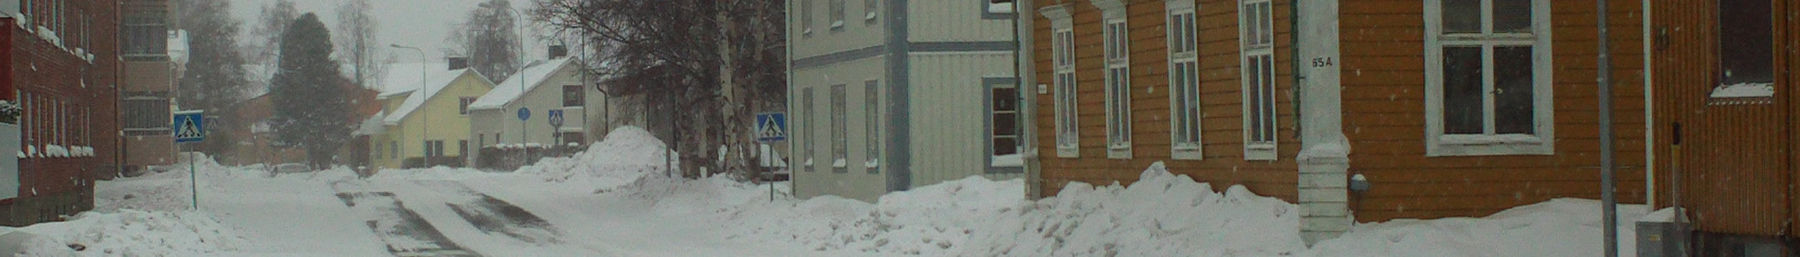 Haparanda banner Street with snow.jpg